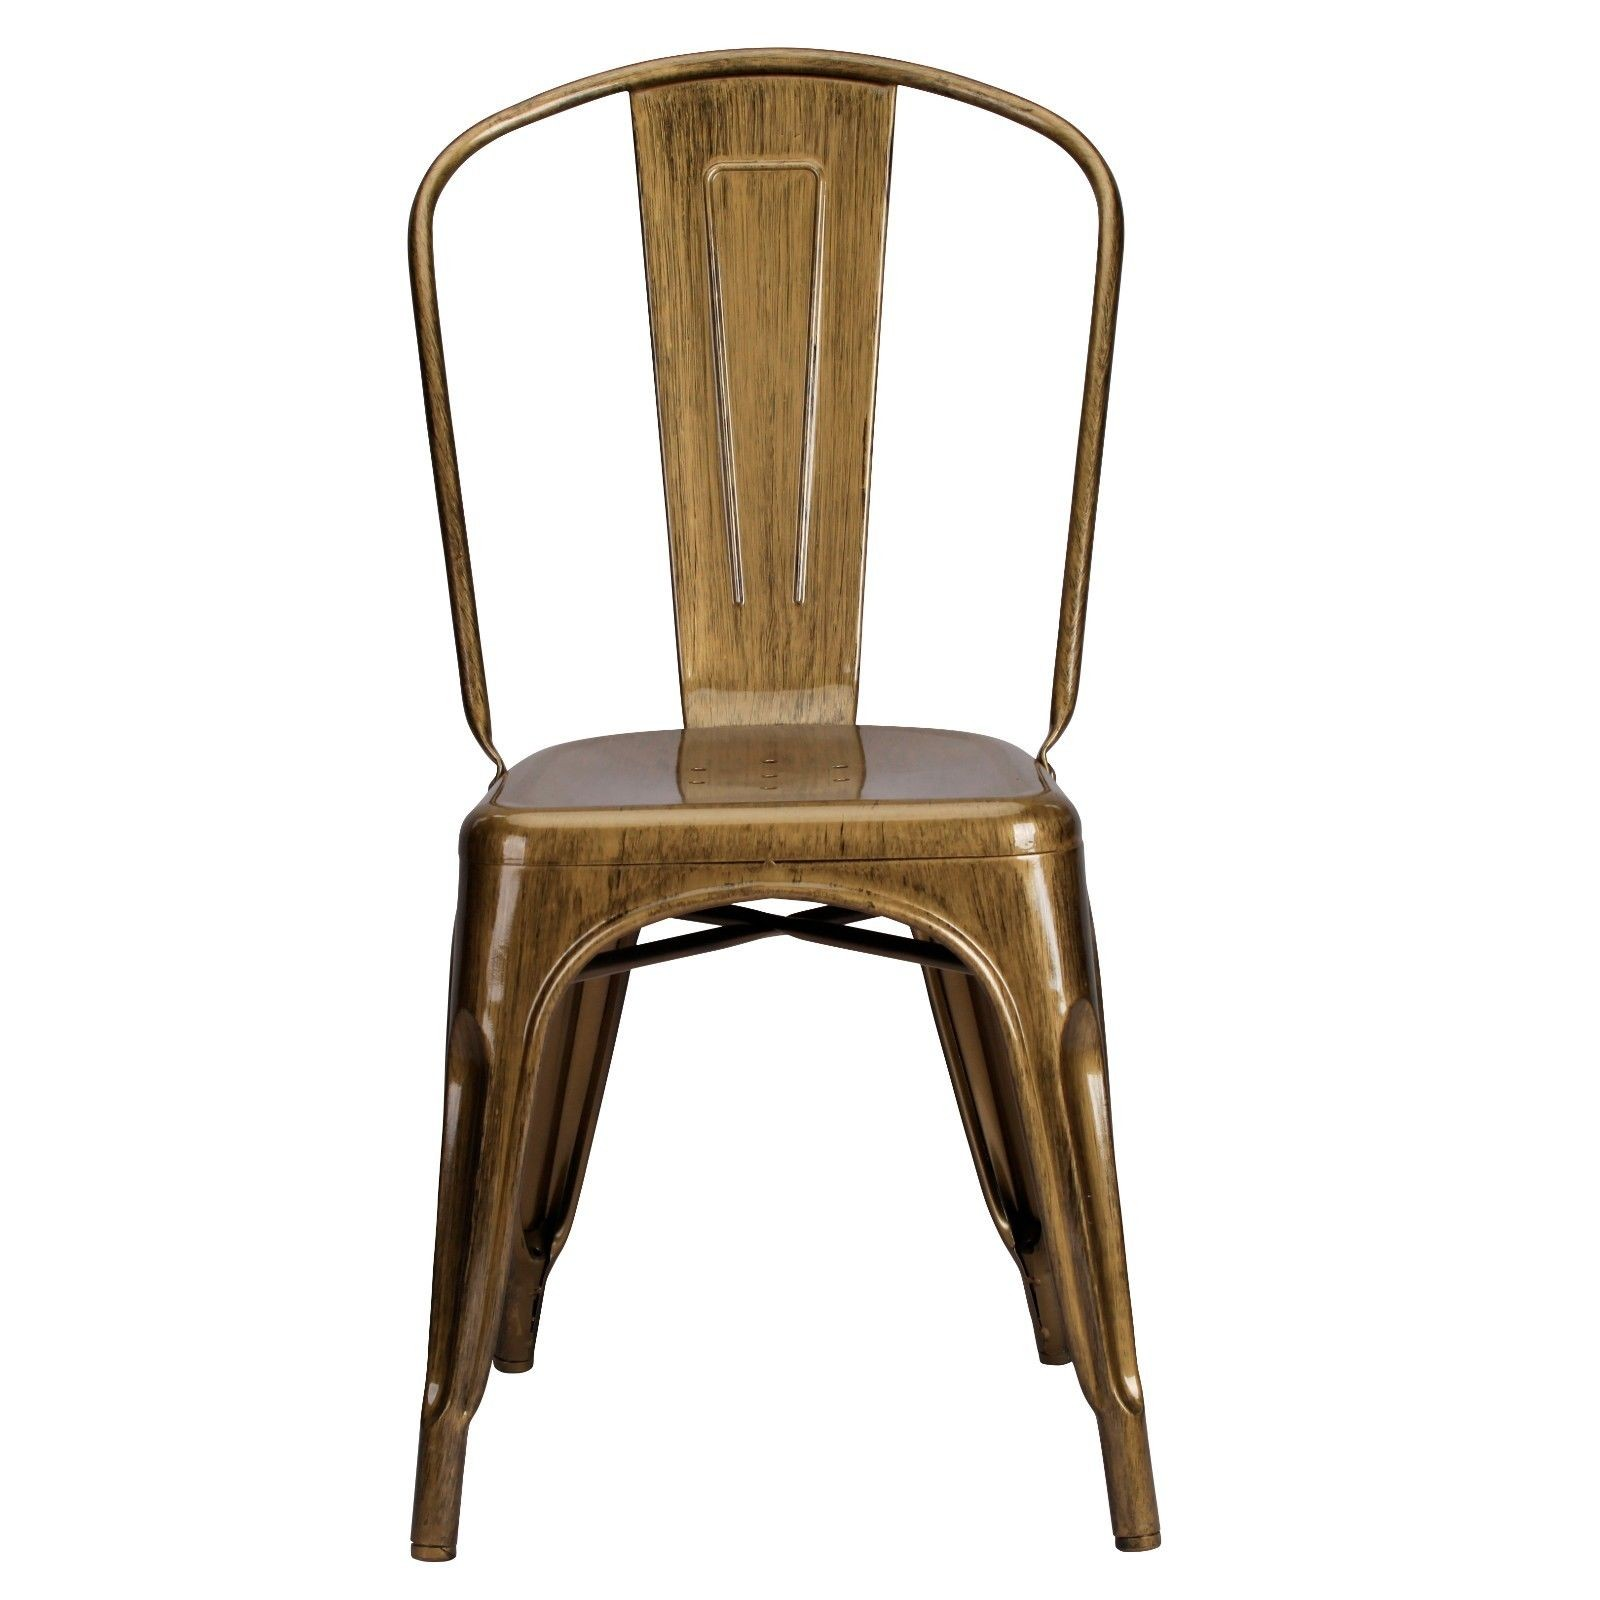 tolix style chair thonet rocking vintage metal brass gold finish dining